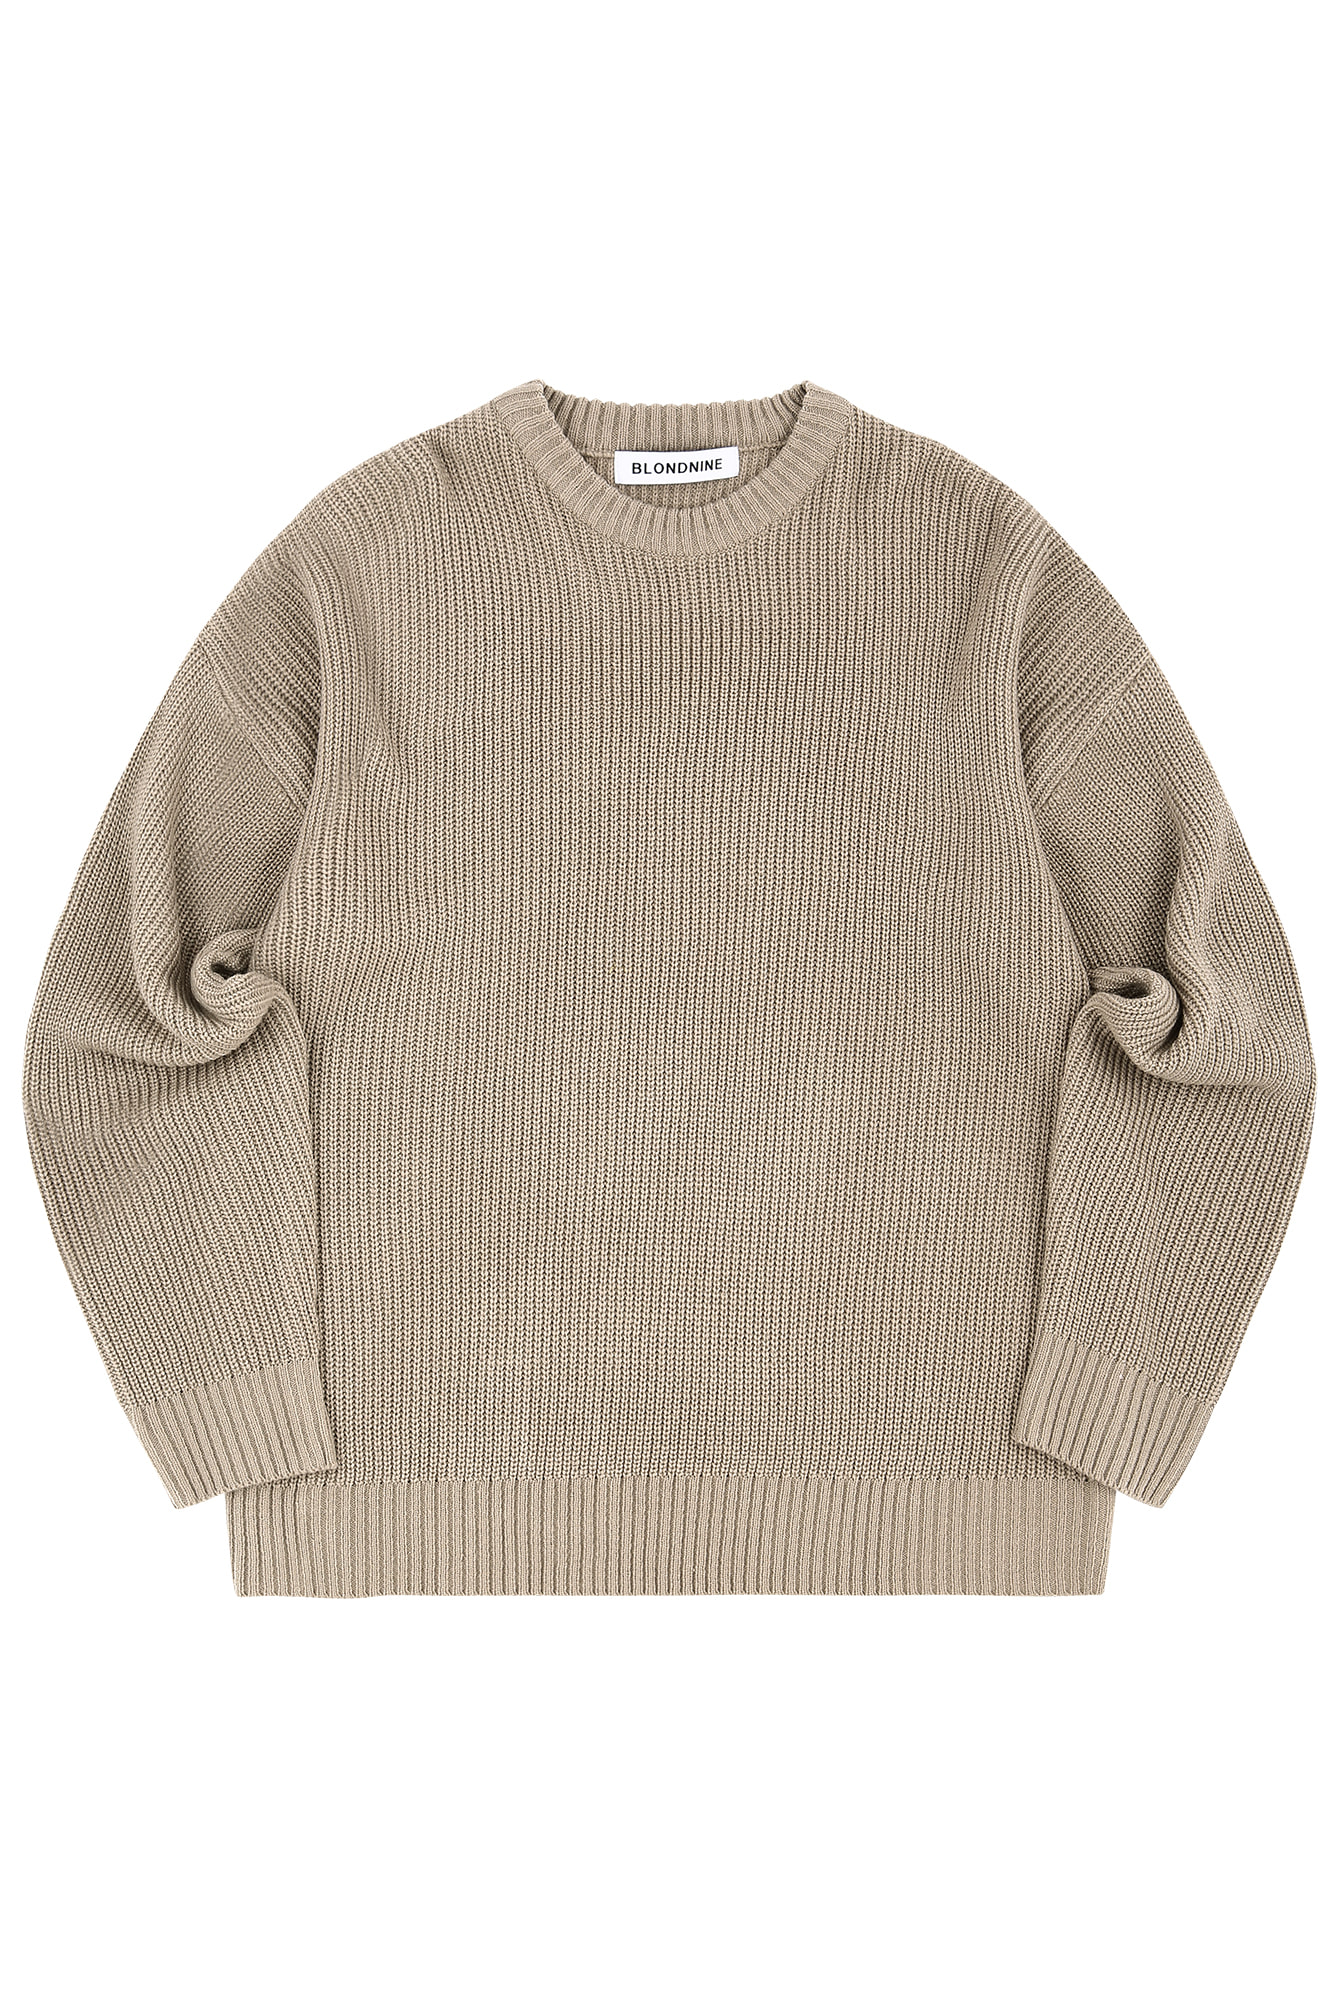 CREW NECK RIB KNIT SWEATER_MOCHA